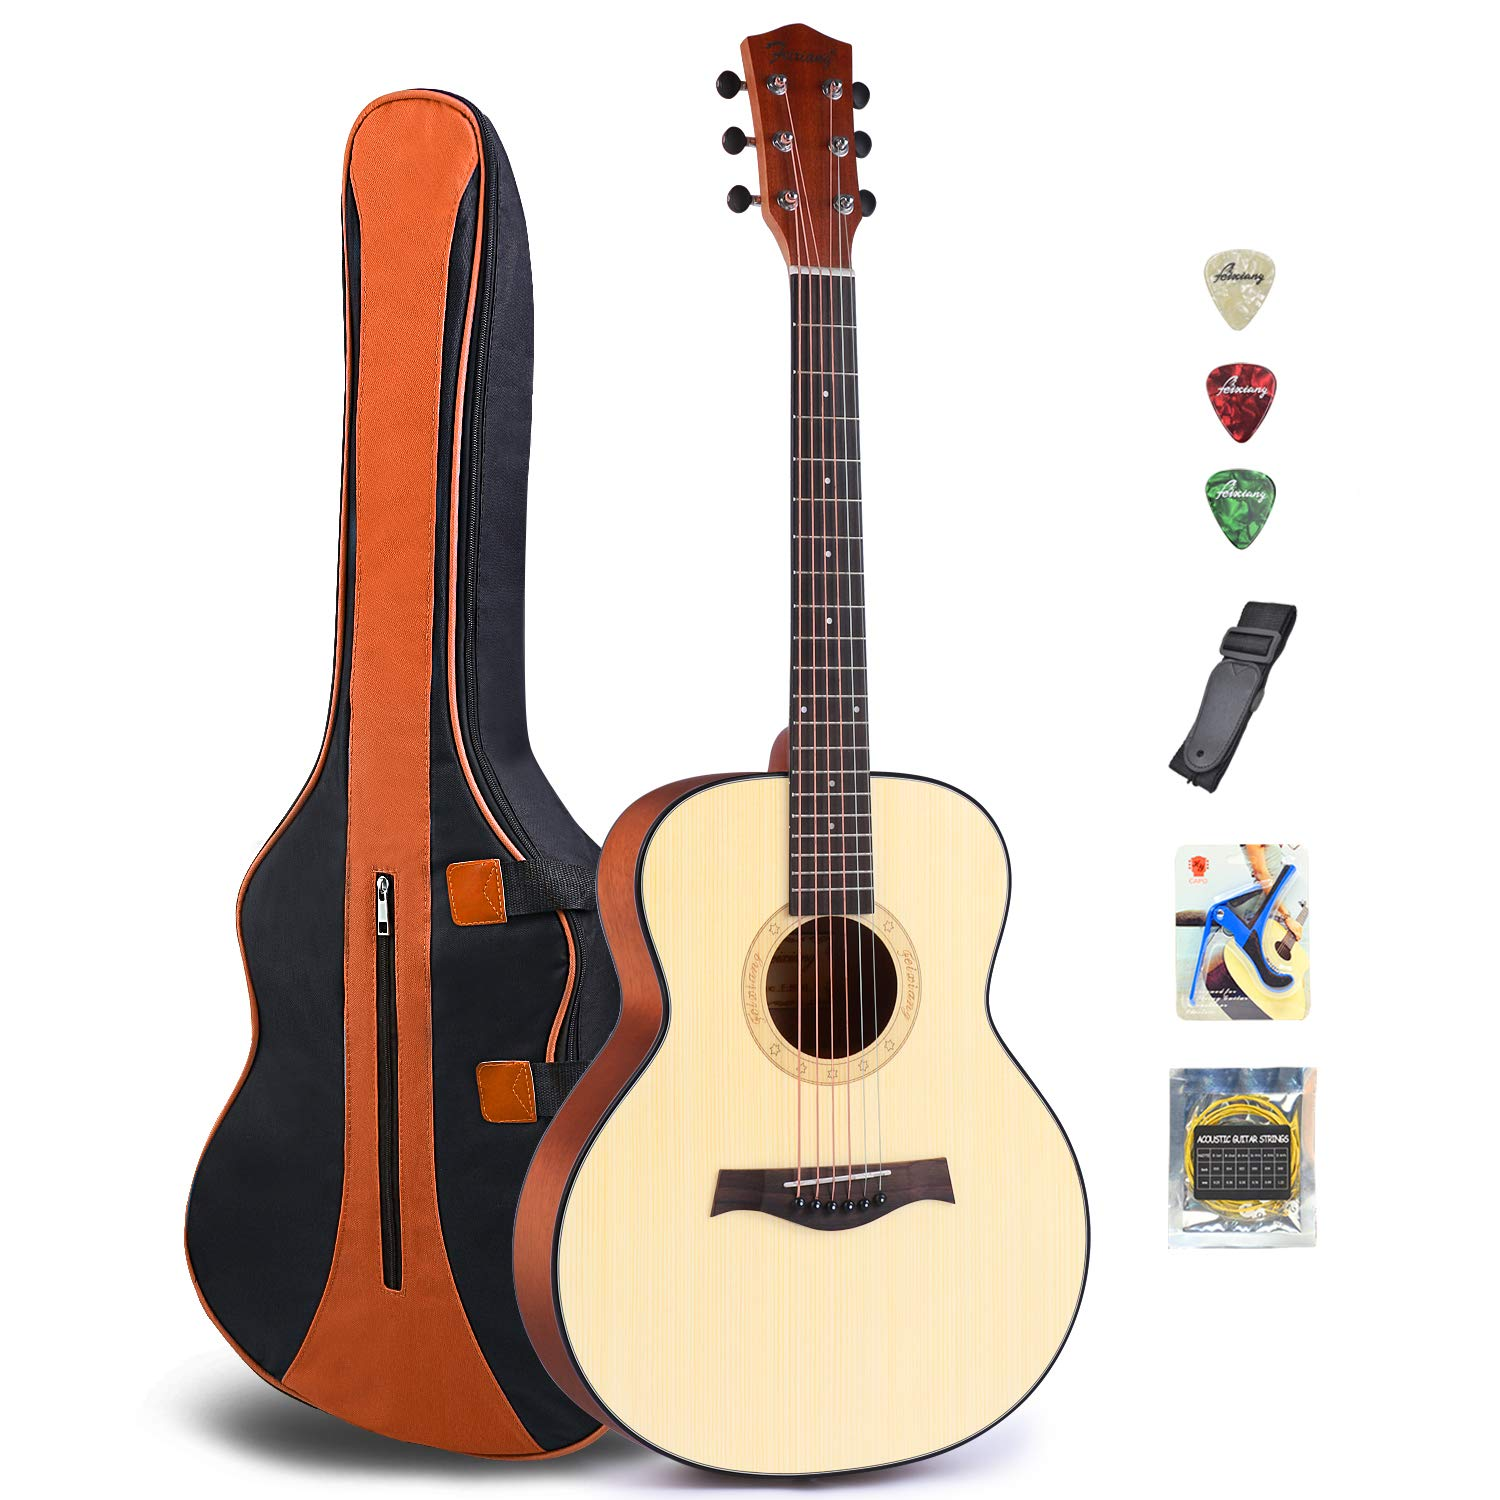 Acoustic Guitar for Guitar Beginner 36 Inch 3/4 Size Classical Travel Guitar Bundle with Gig Bag Capo Strings Strap Picks (36-Re) by JJ JIN DI LONG